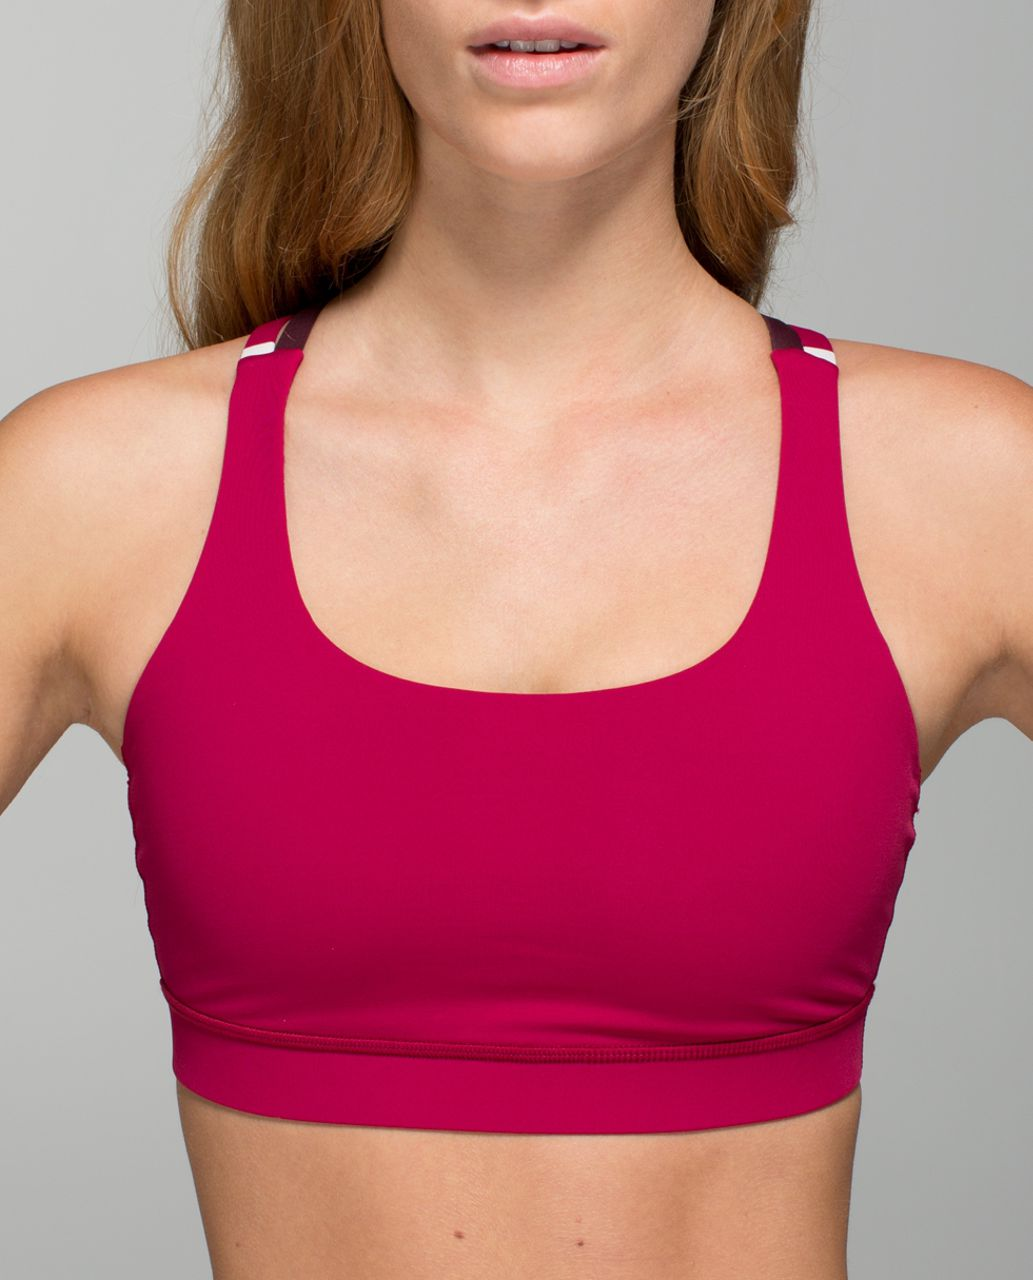 Lululemon Energy Bra - Bumble Berry / Bordeaux Drama / Blossom Stripe Bumble Berry Ghost